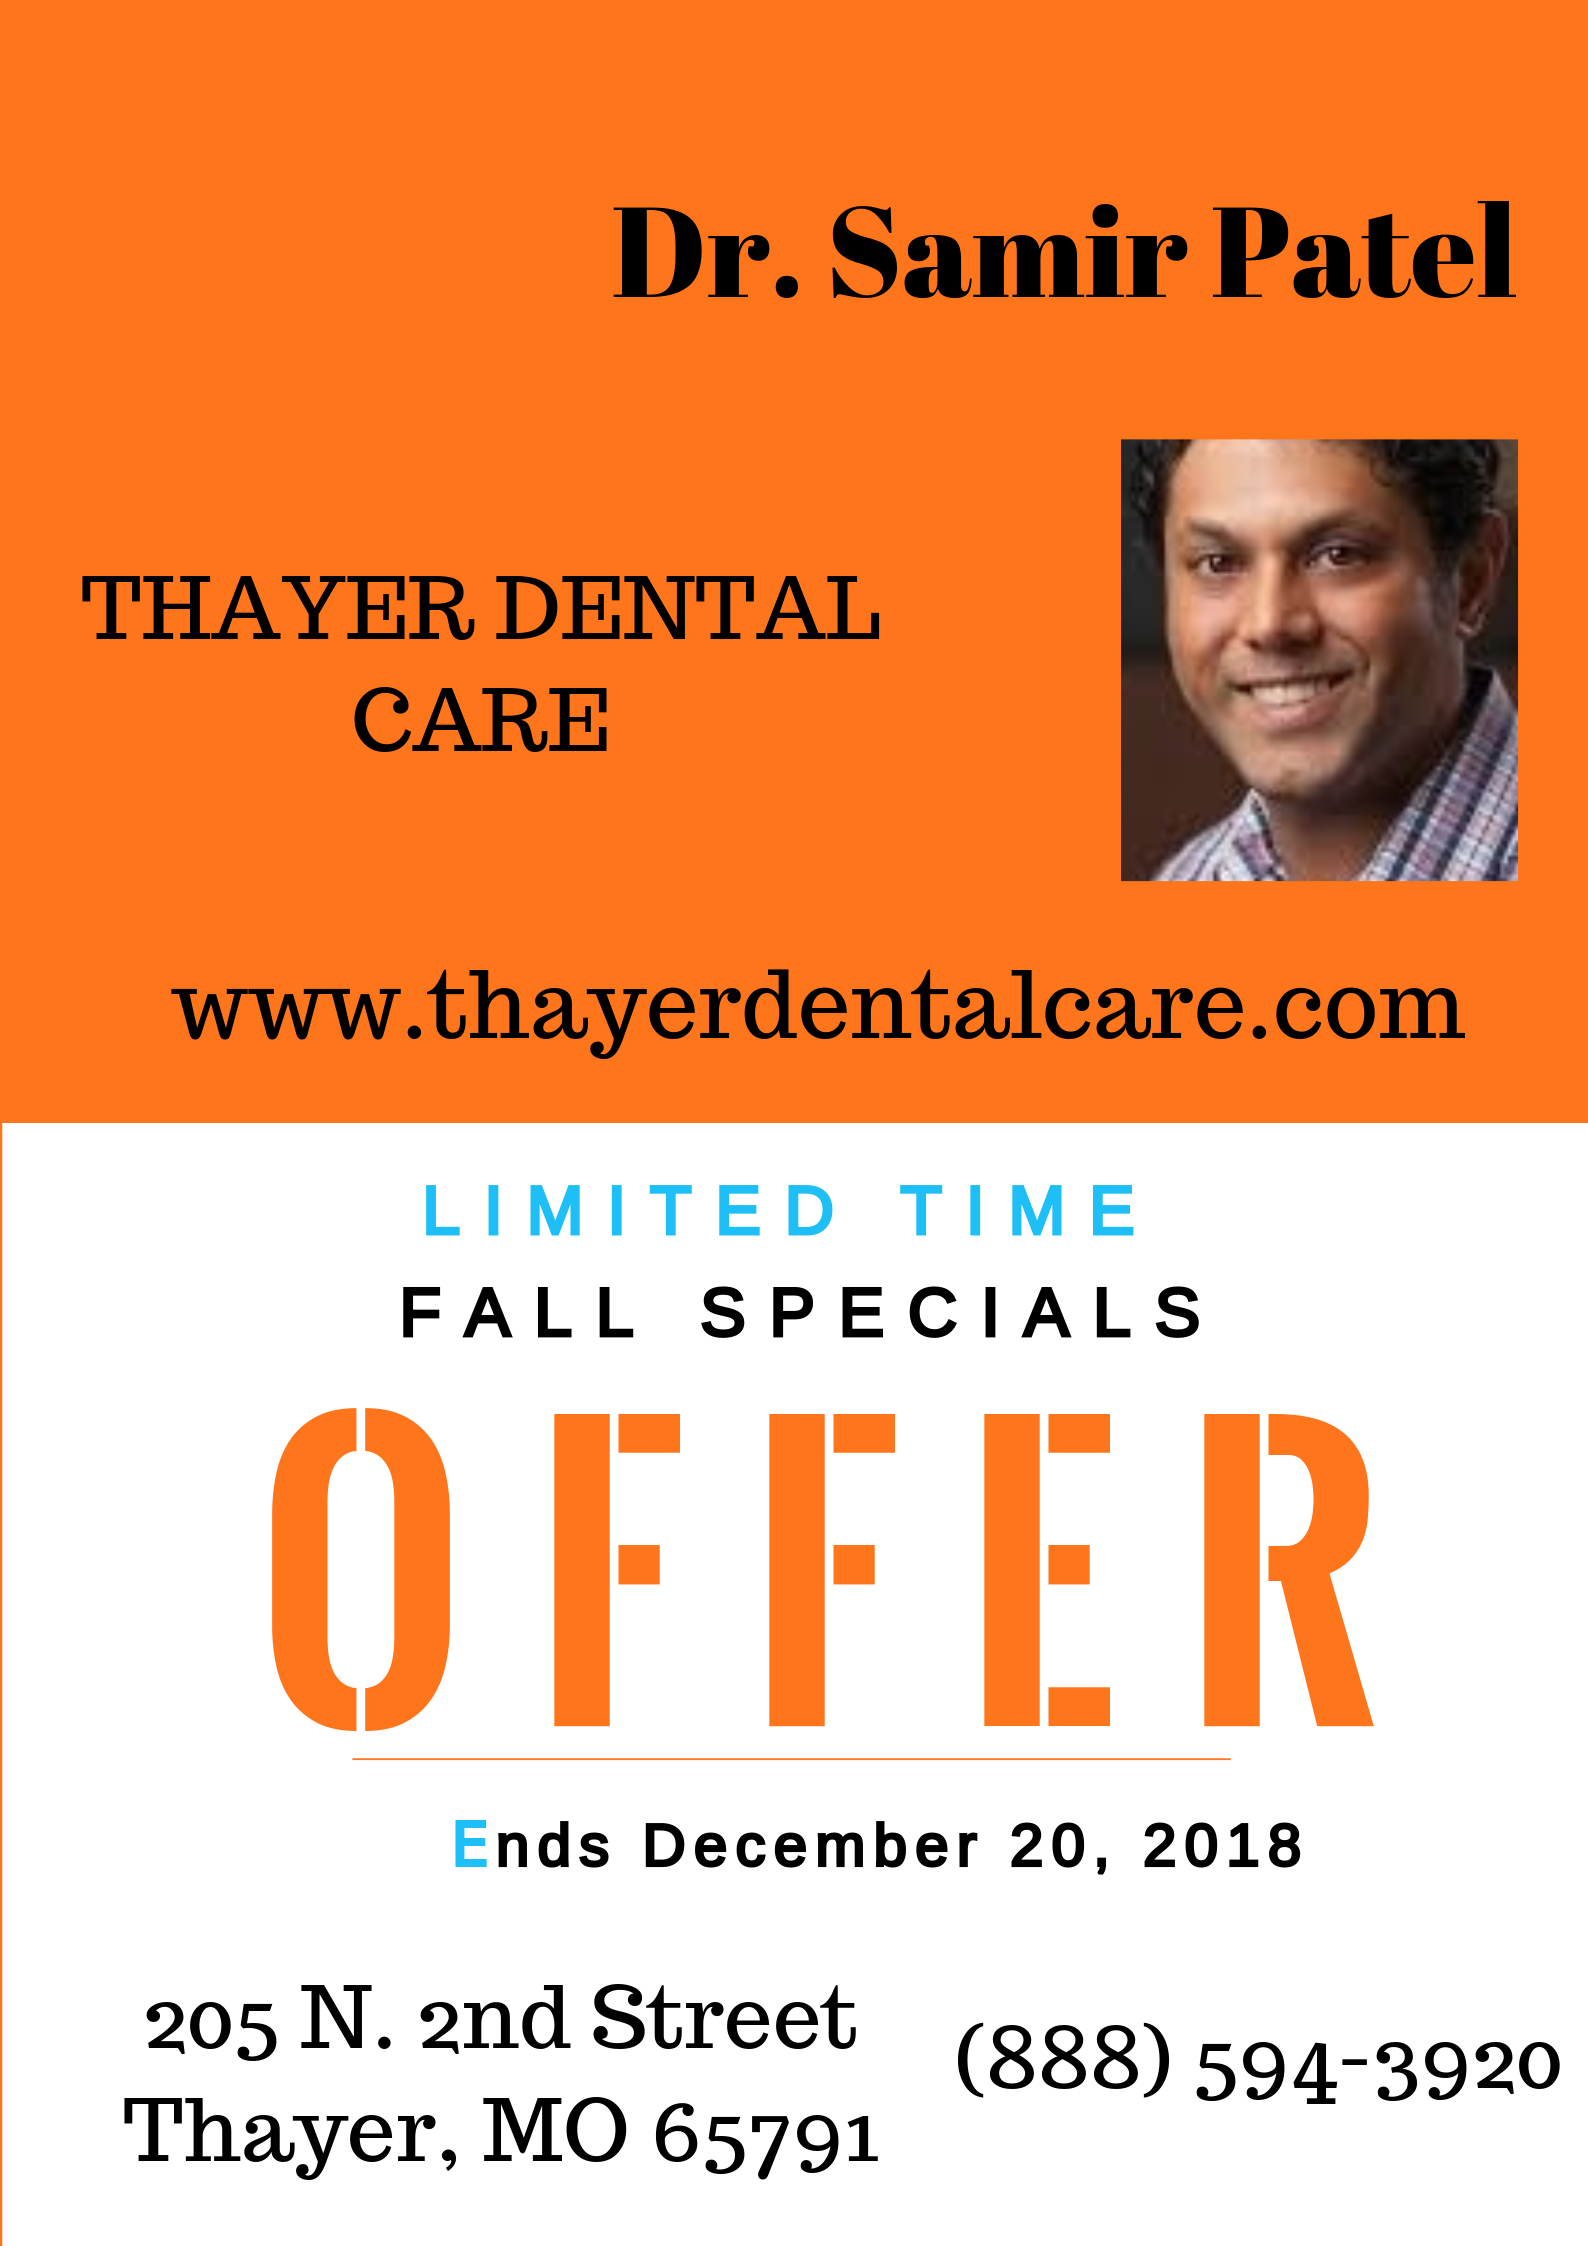 Dental Care - Fall Special Offer Ends December 20, 2018